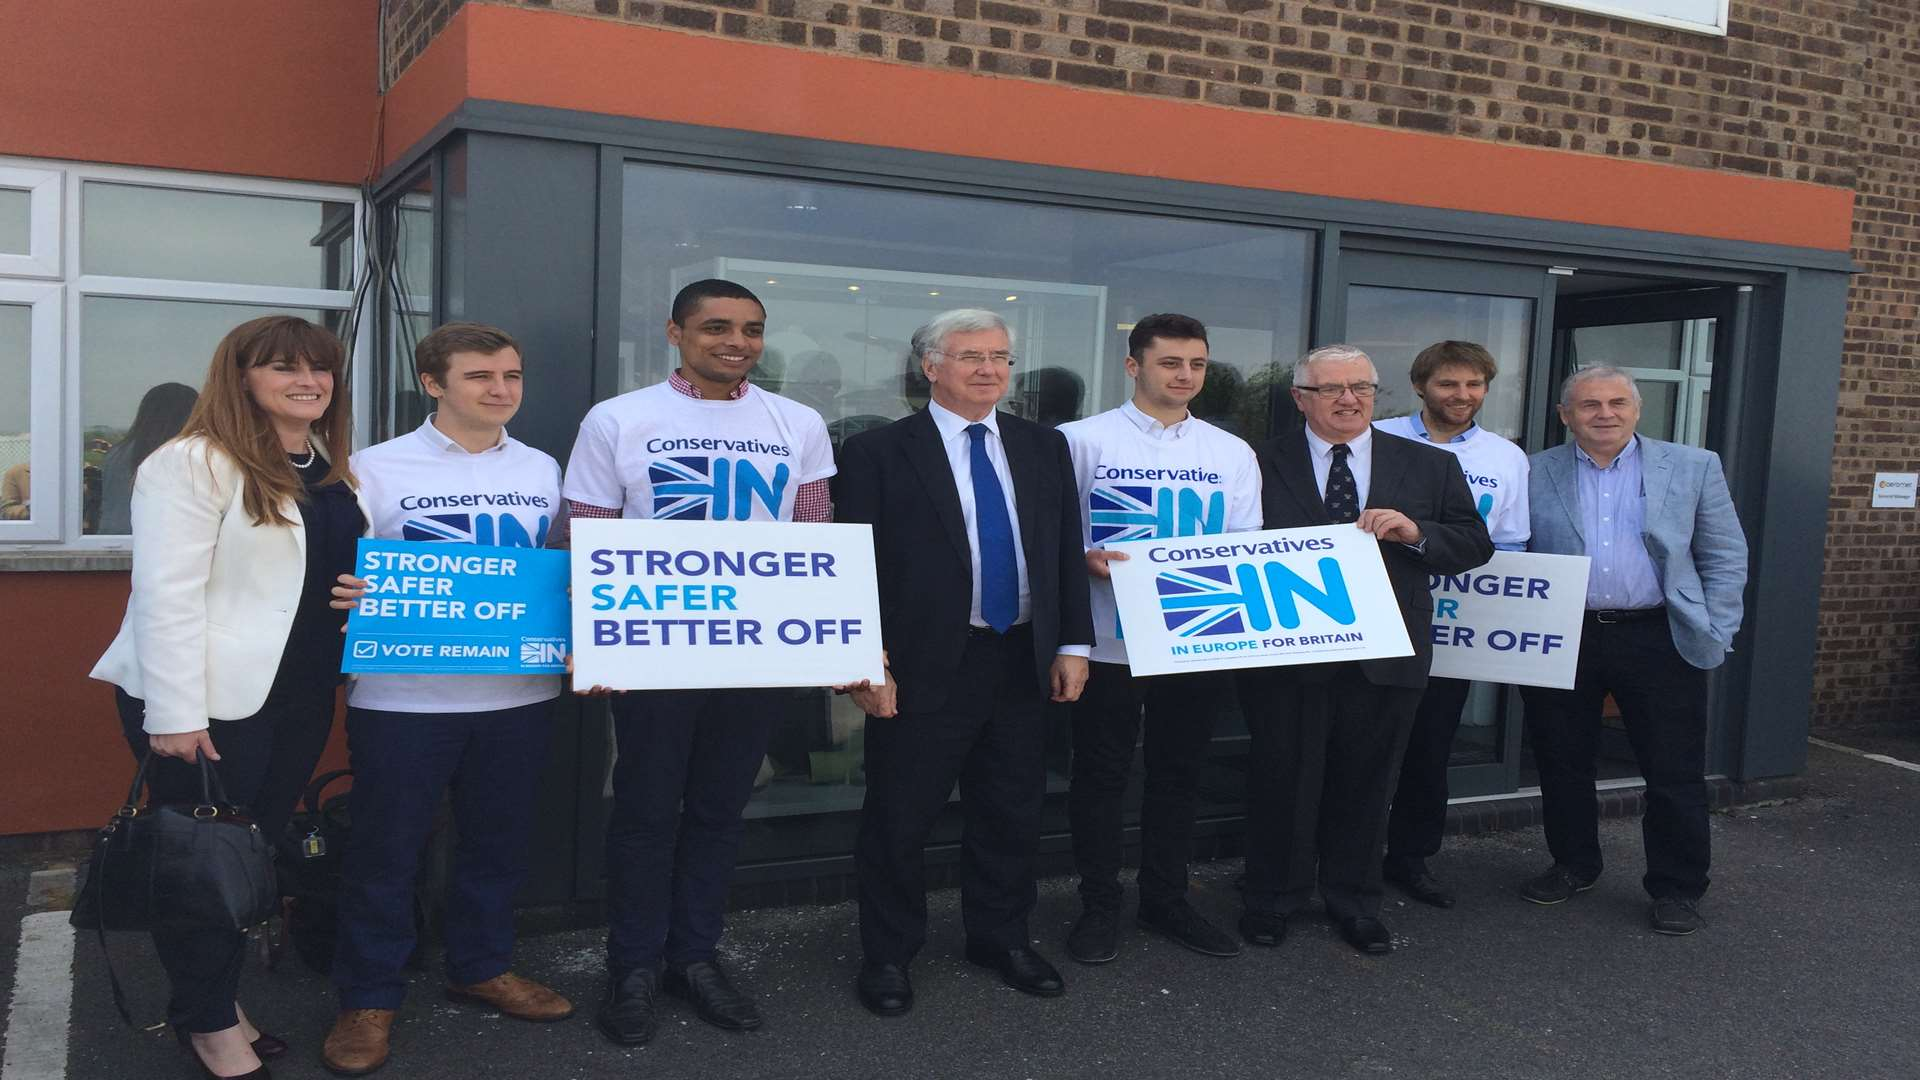 Rochester and Strood MP Kelly Tolhurst, Defence Secretary Michael Fallon and remain campaigners at Euromet in Rochester